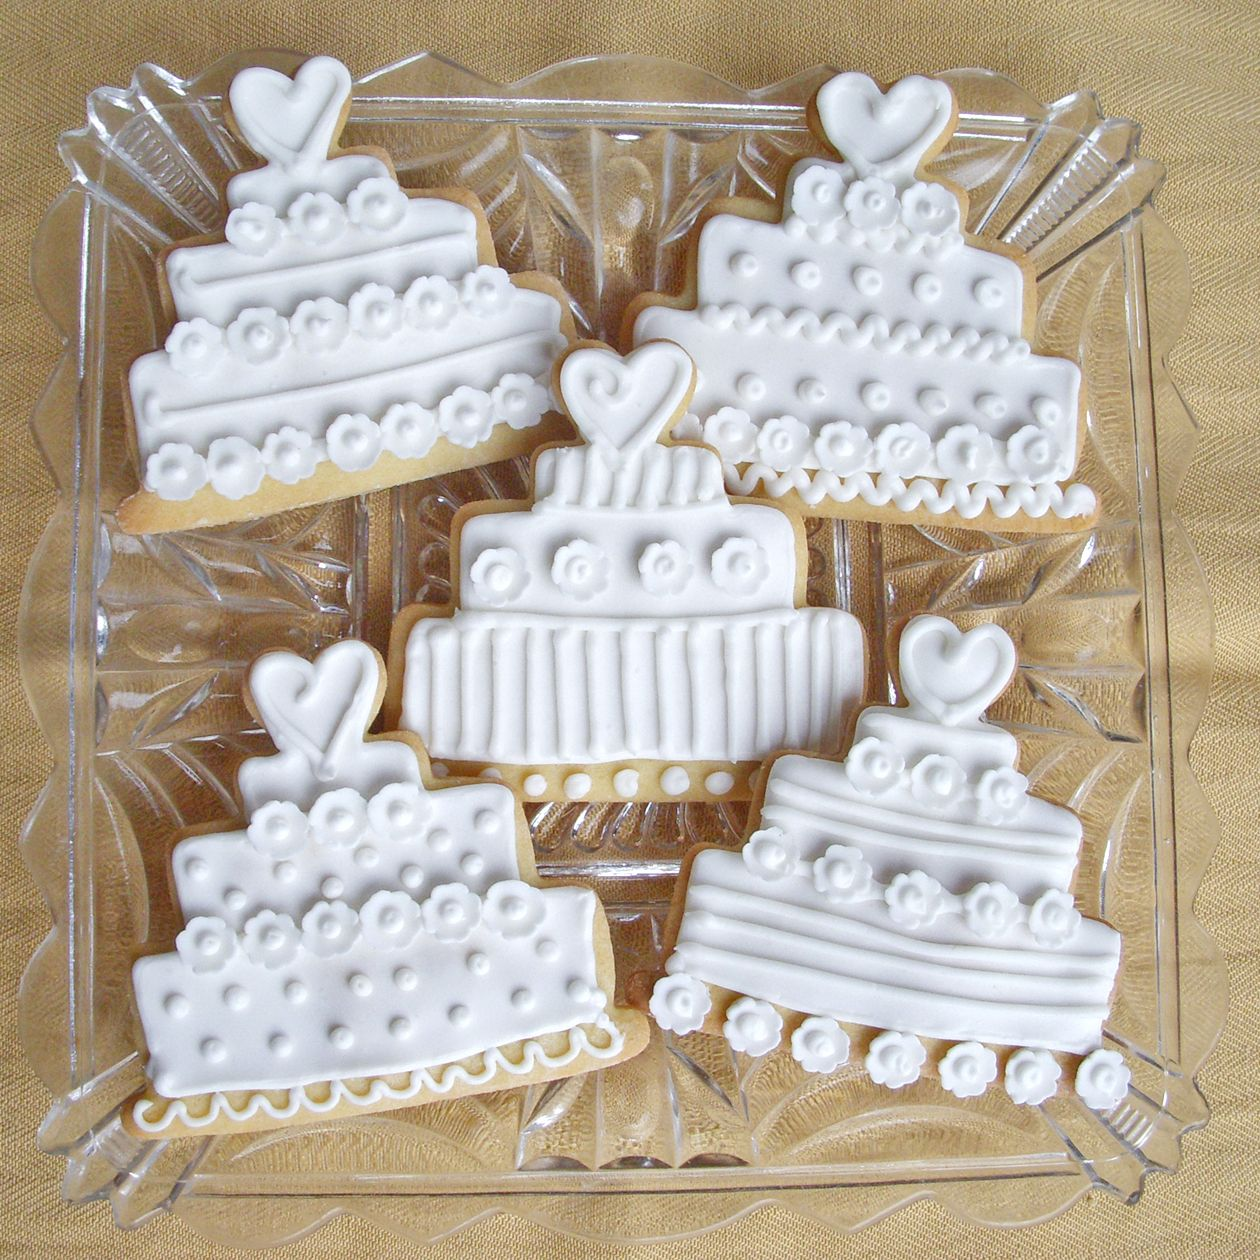 Fondant Flowers For Wedding Cakes: Wedding Cake Sugar Cookies With